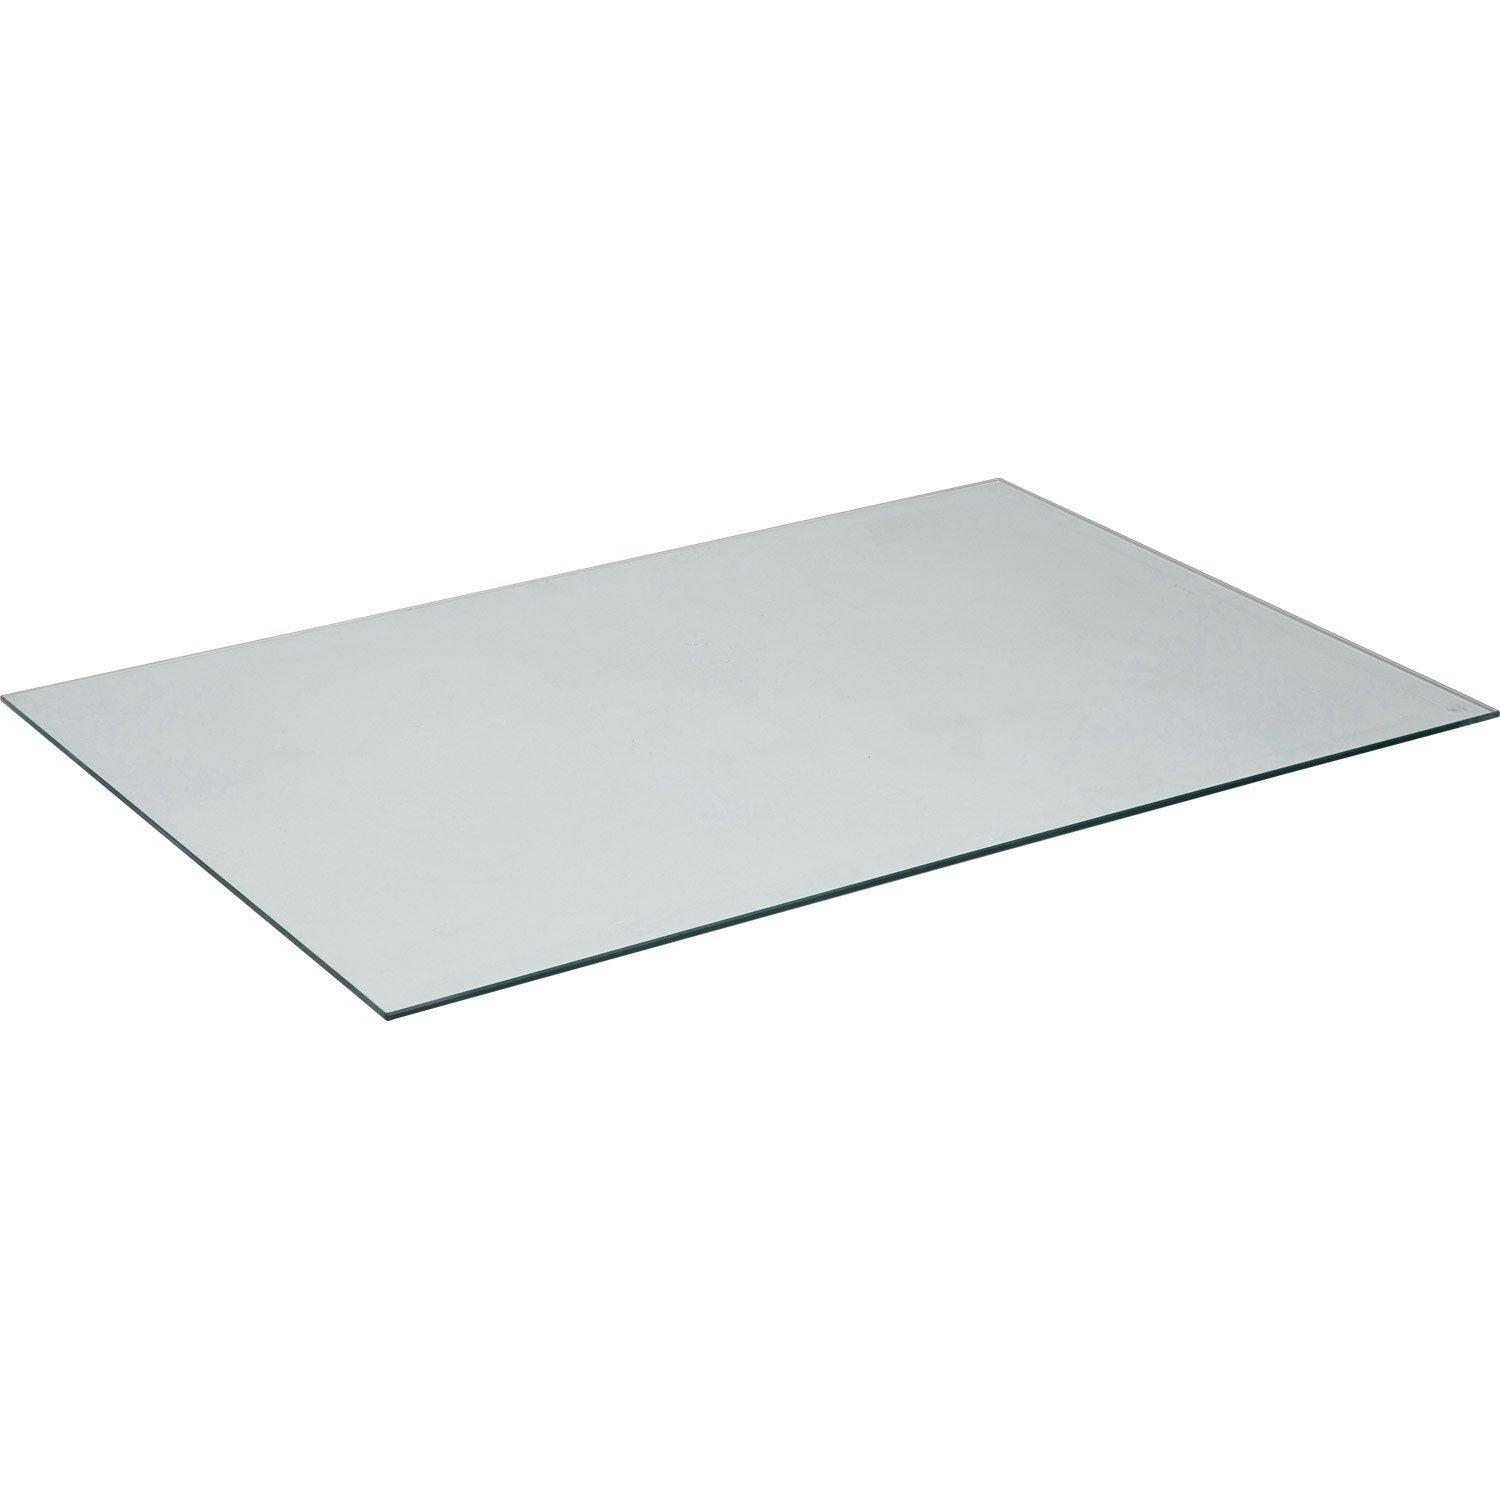 Plateau de table verre x cm x ep 8 mm leroy merlin for Plateau en verre